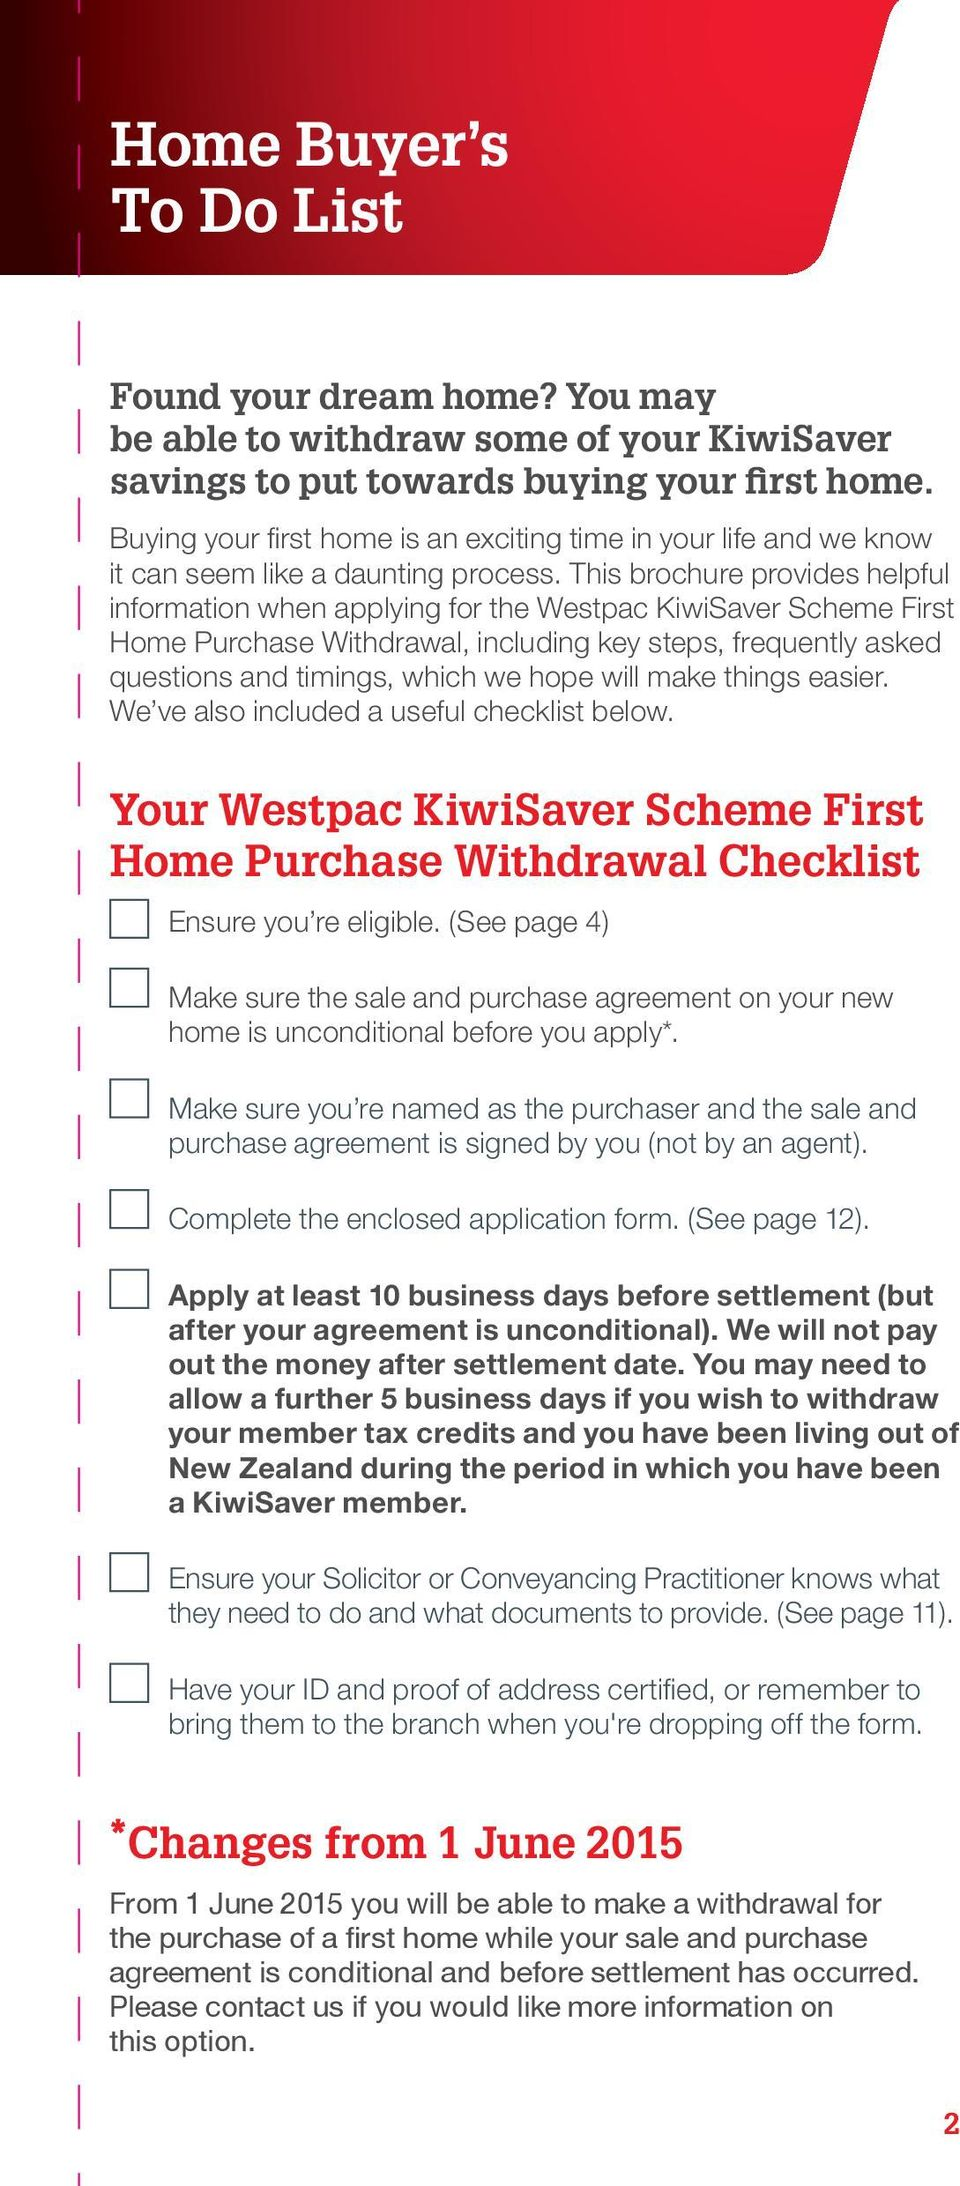 This brochure provides helpful information when applying for the Westpac KiwiSaver Scheme First Home Purchase Withdrawal, including key steps, frequently asked questions and timings, which we hope